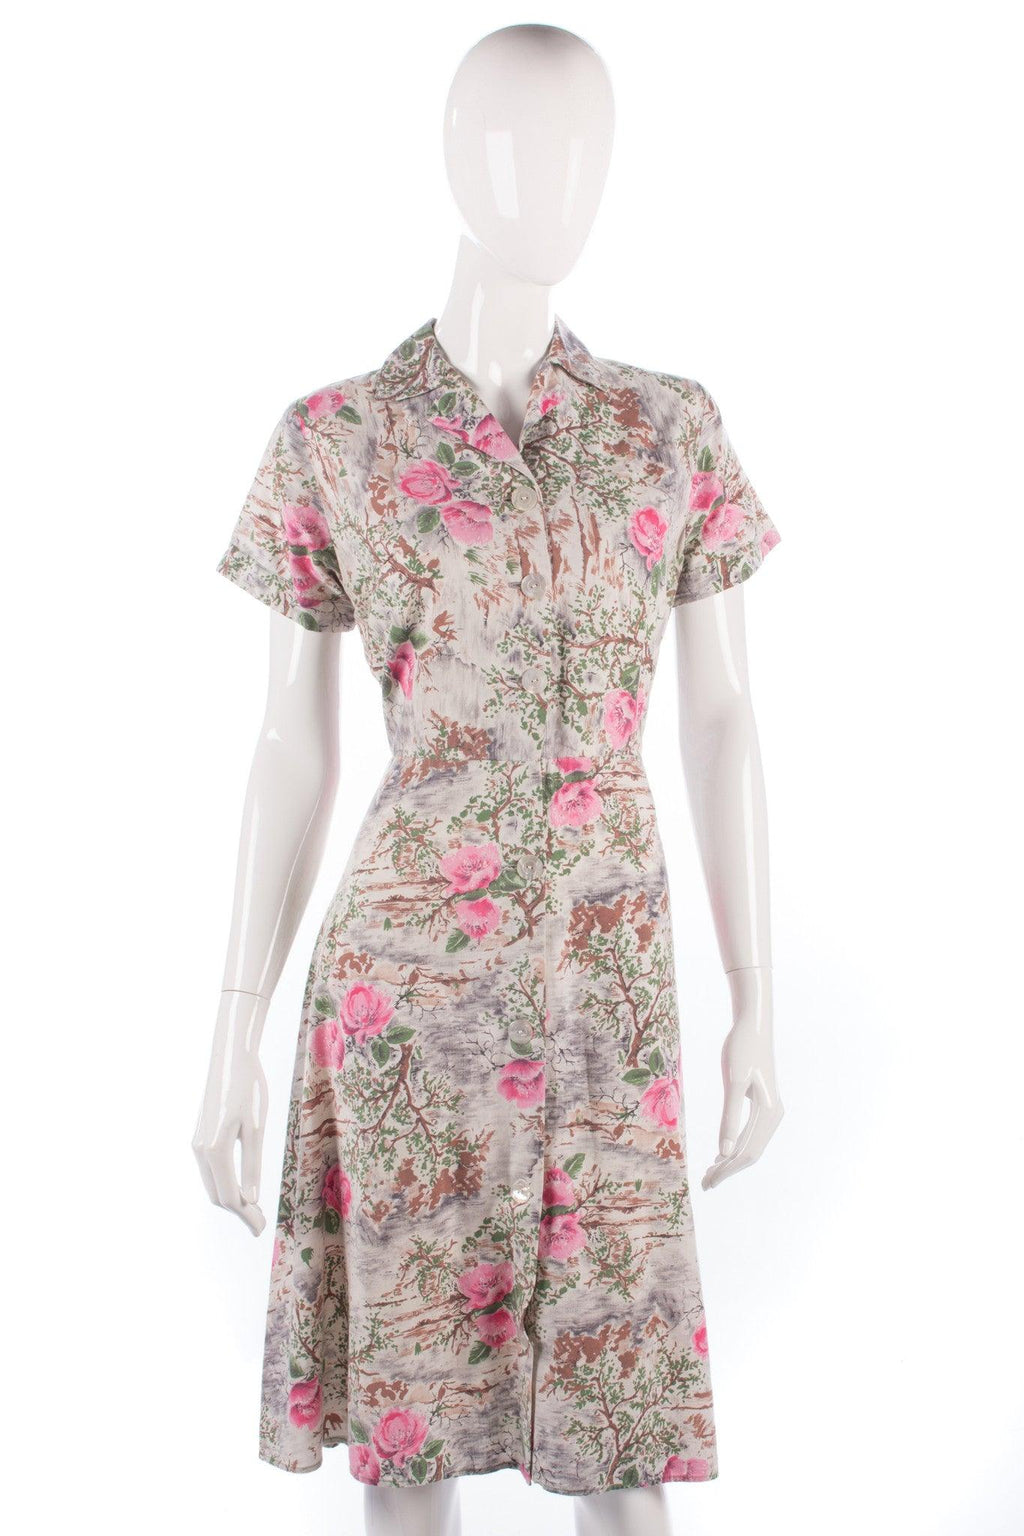 Vintage Dandy cotton 1950's dress